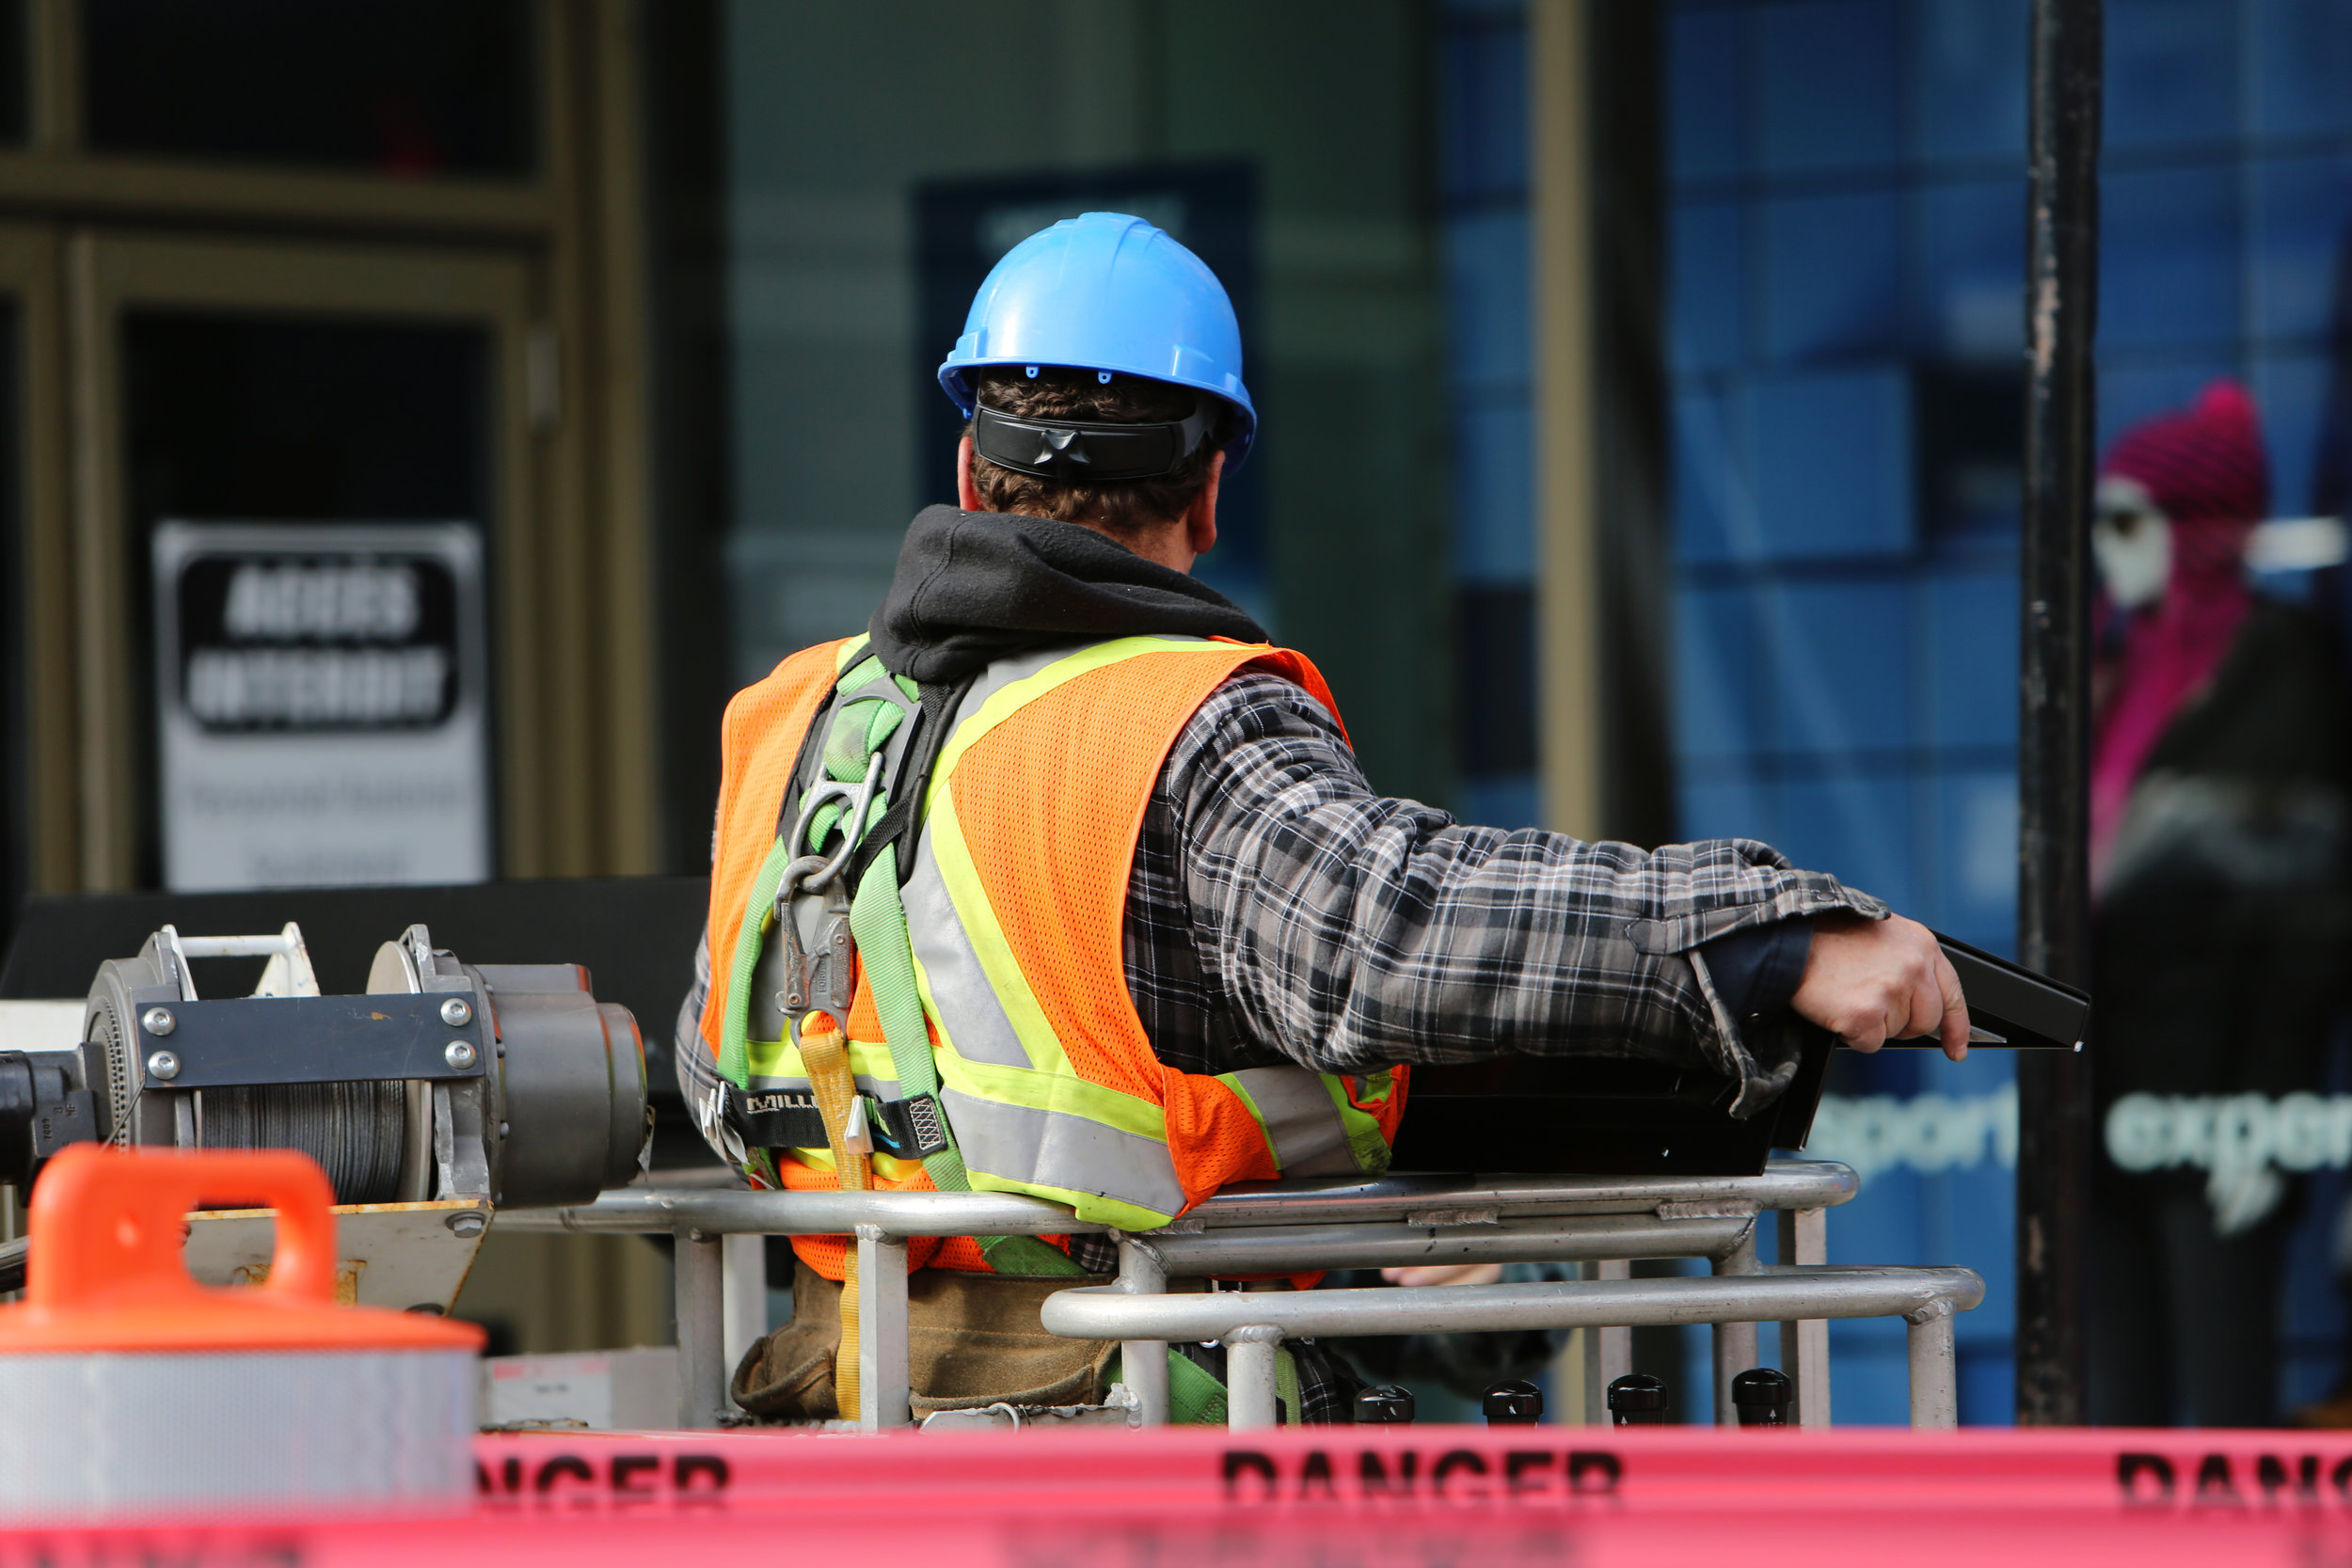 Job Safety Analysis Forms supplement safety procedures